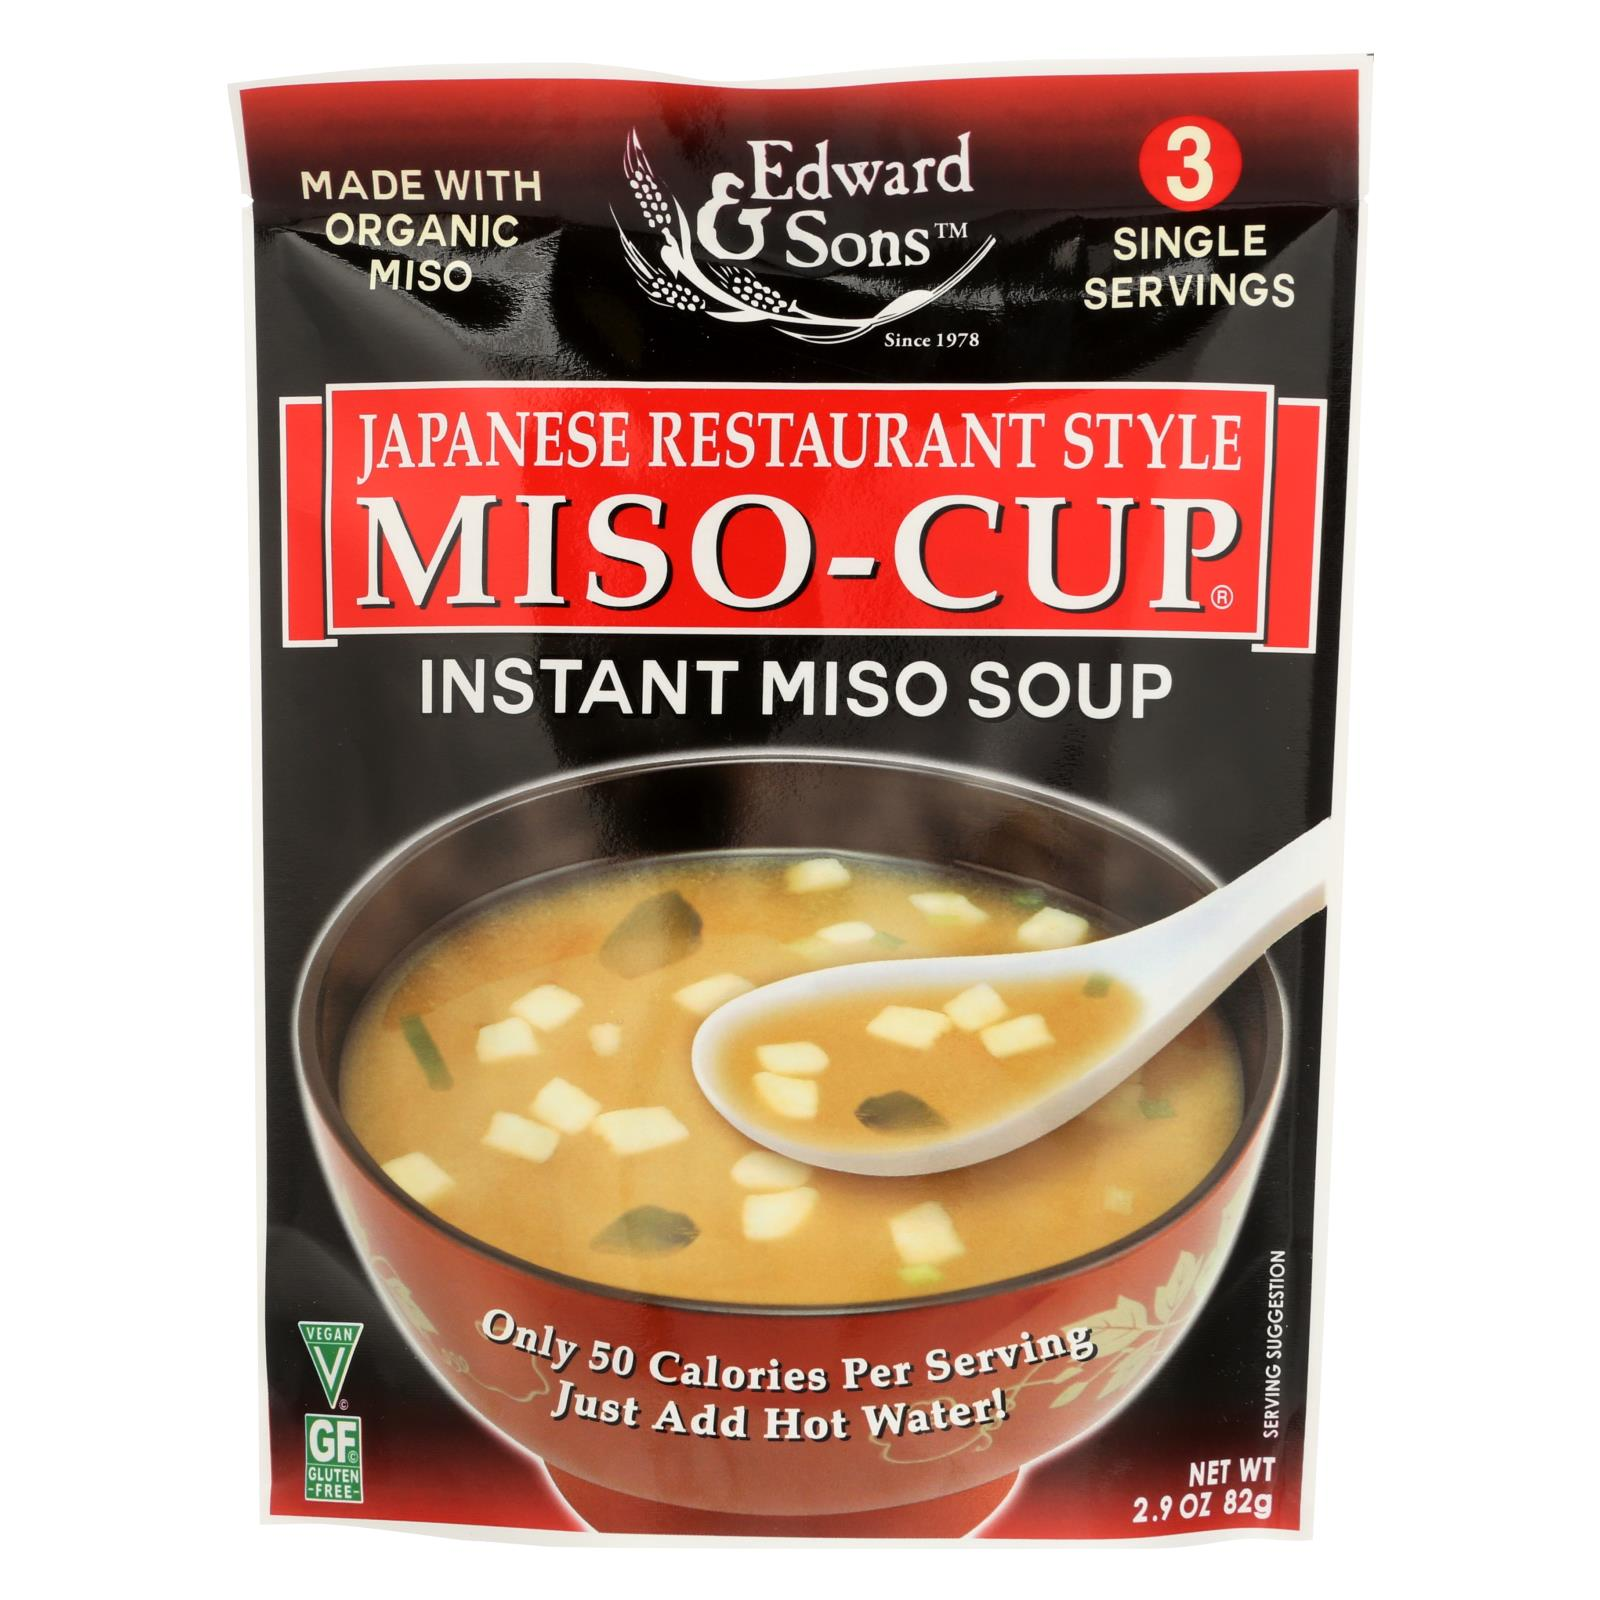 Edward And Sons Miso Cup Soup - Japanese Restaurant Style - Case Of 6 - 2.9 Oz. HG0922856